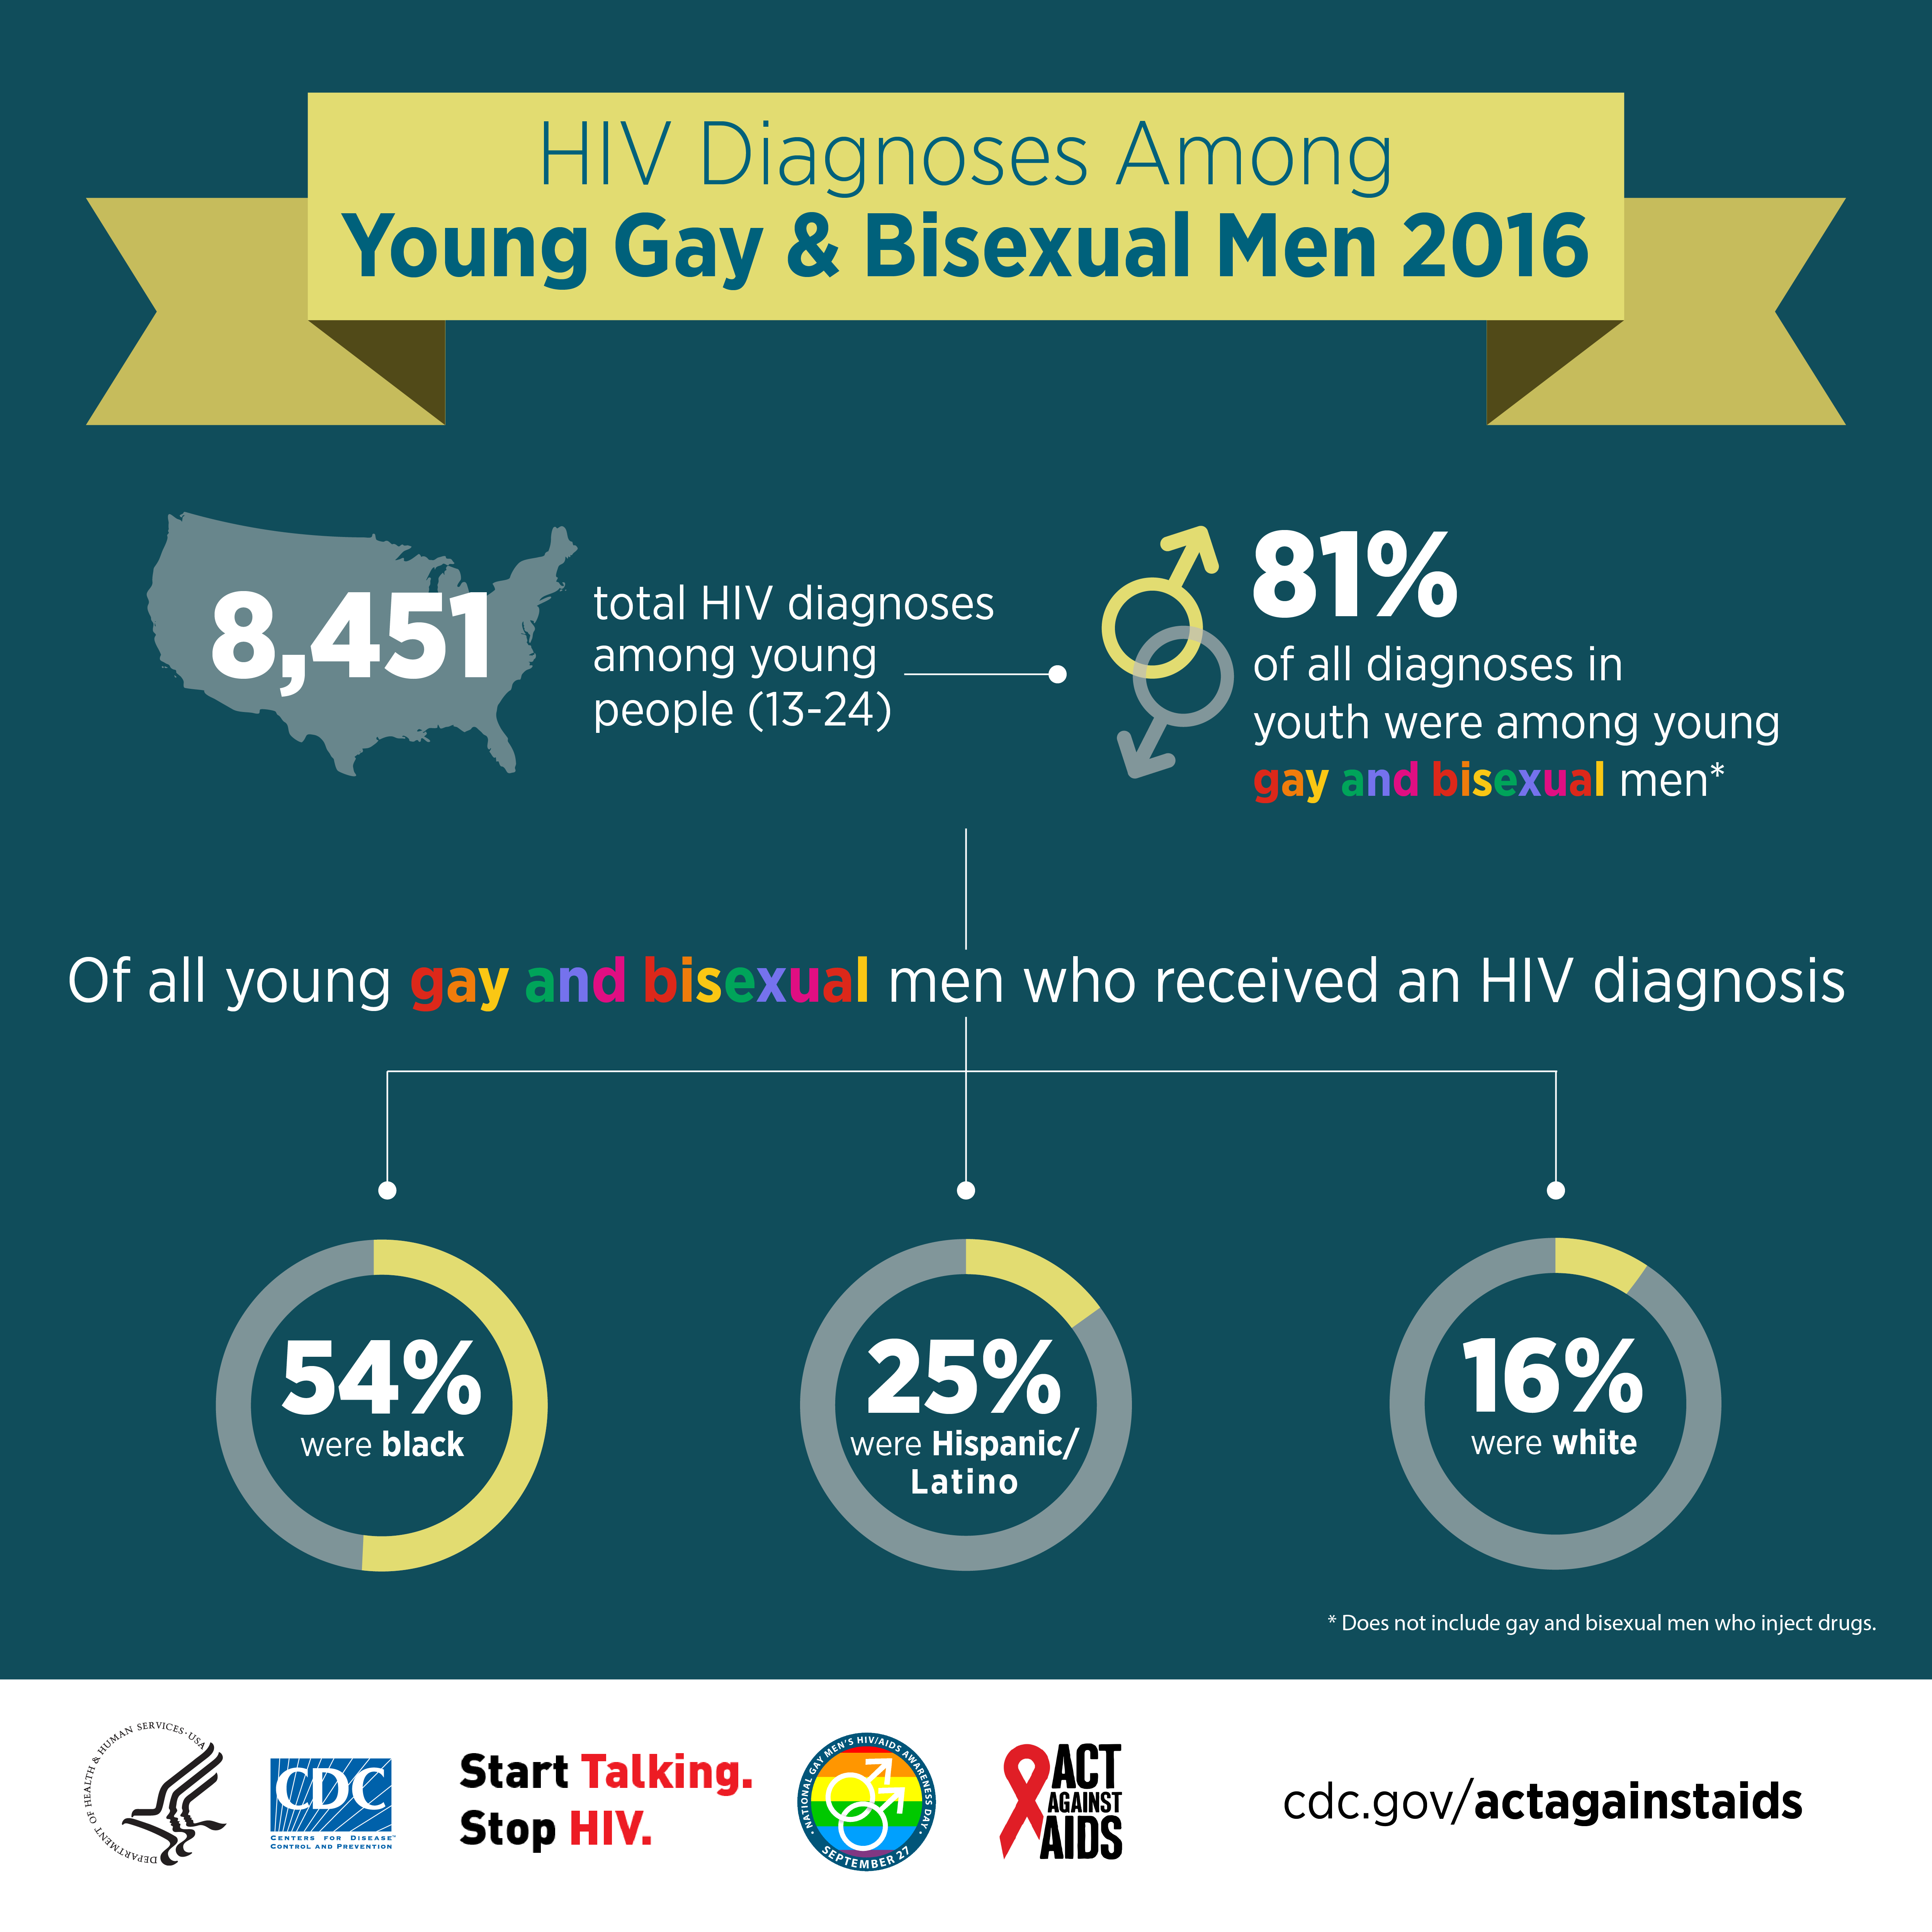 This infographic explains the continuum of care for gay and bisexual men living with HIV. In 2014, 615,400 gay and bisexual men were living with HIV in the US. 83% were diagnosed, 61% received care, 48% were retained in care, and 51% were virally suppressed.